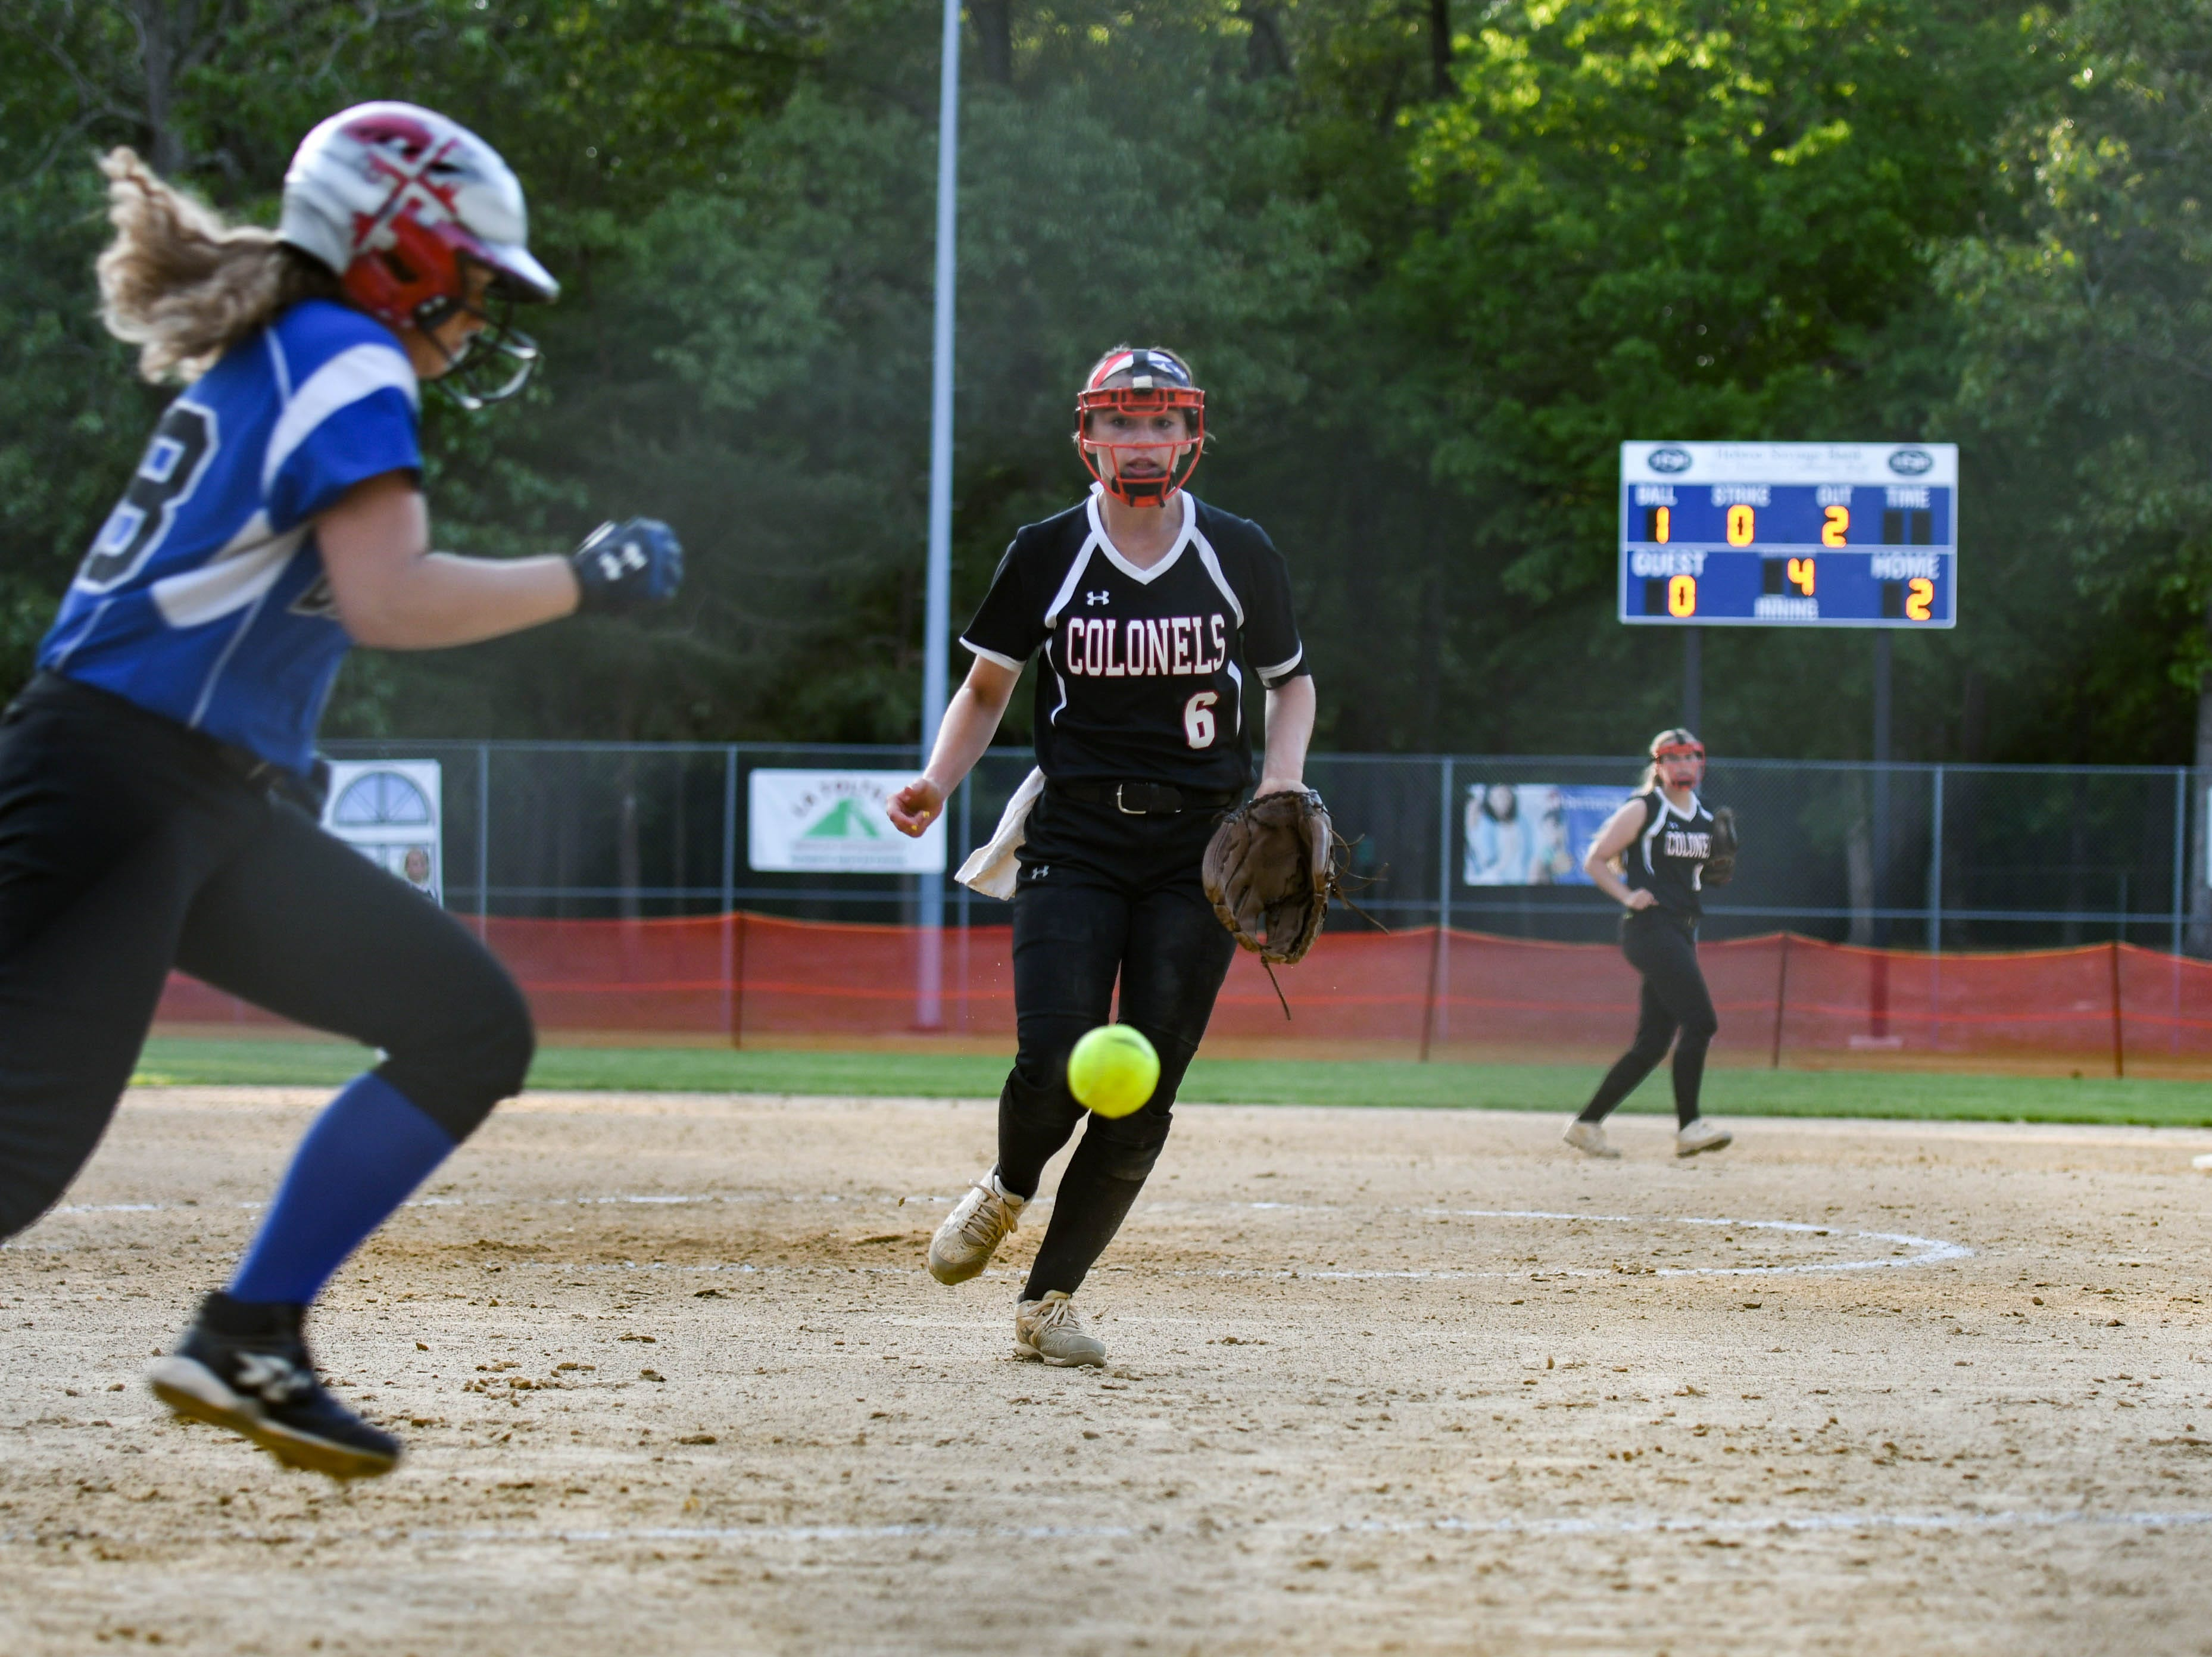 Colonel Richardson's Jen Larrimore (6) fields the ball against Decatur in the Bayside Softball Championship game on Wednesday, May 8, 2019. Decatur prevailed with a score of 4 to 1.